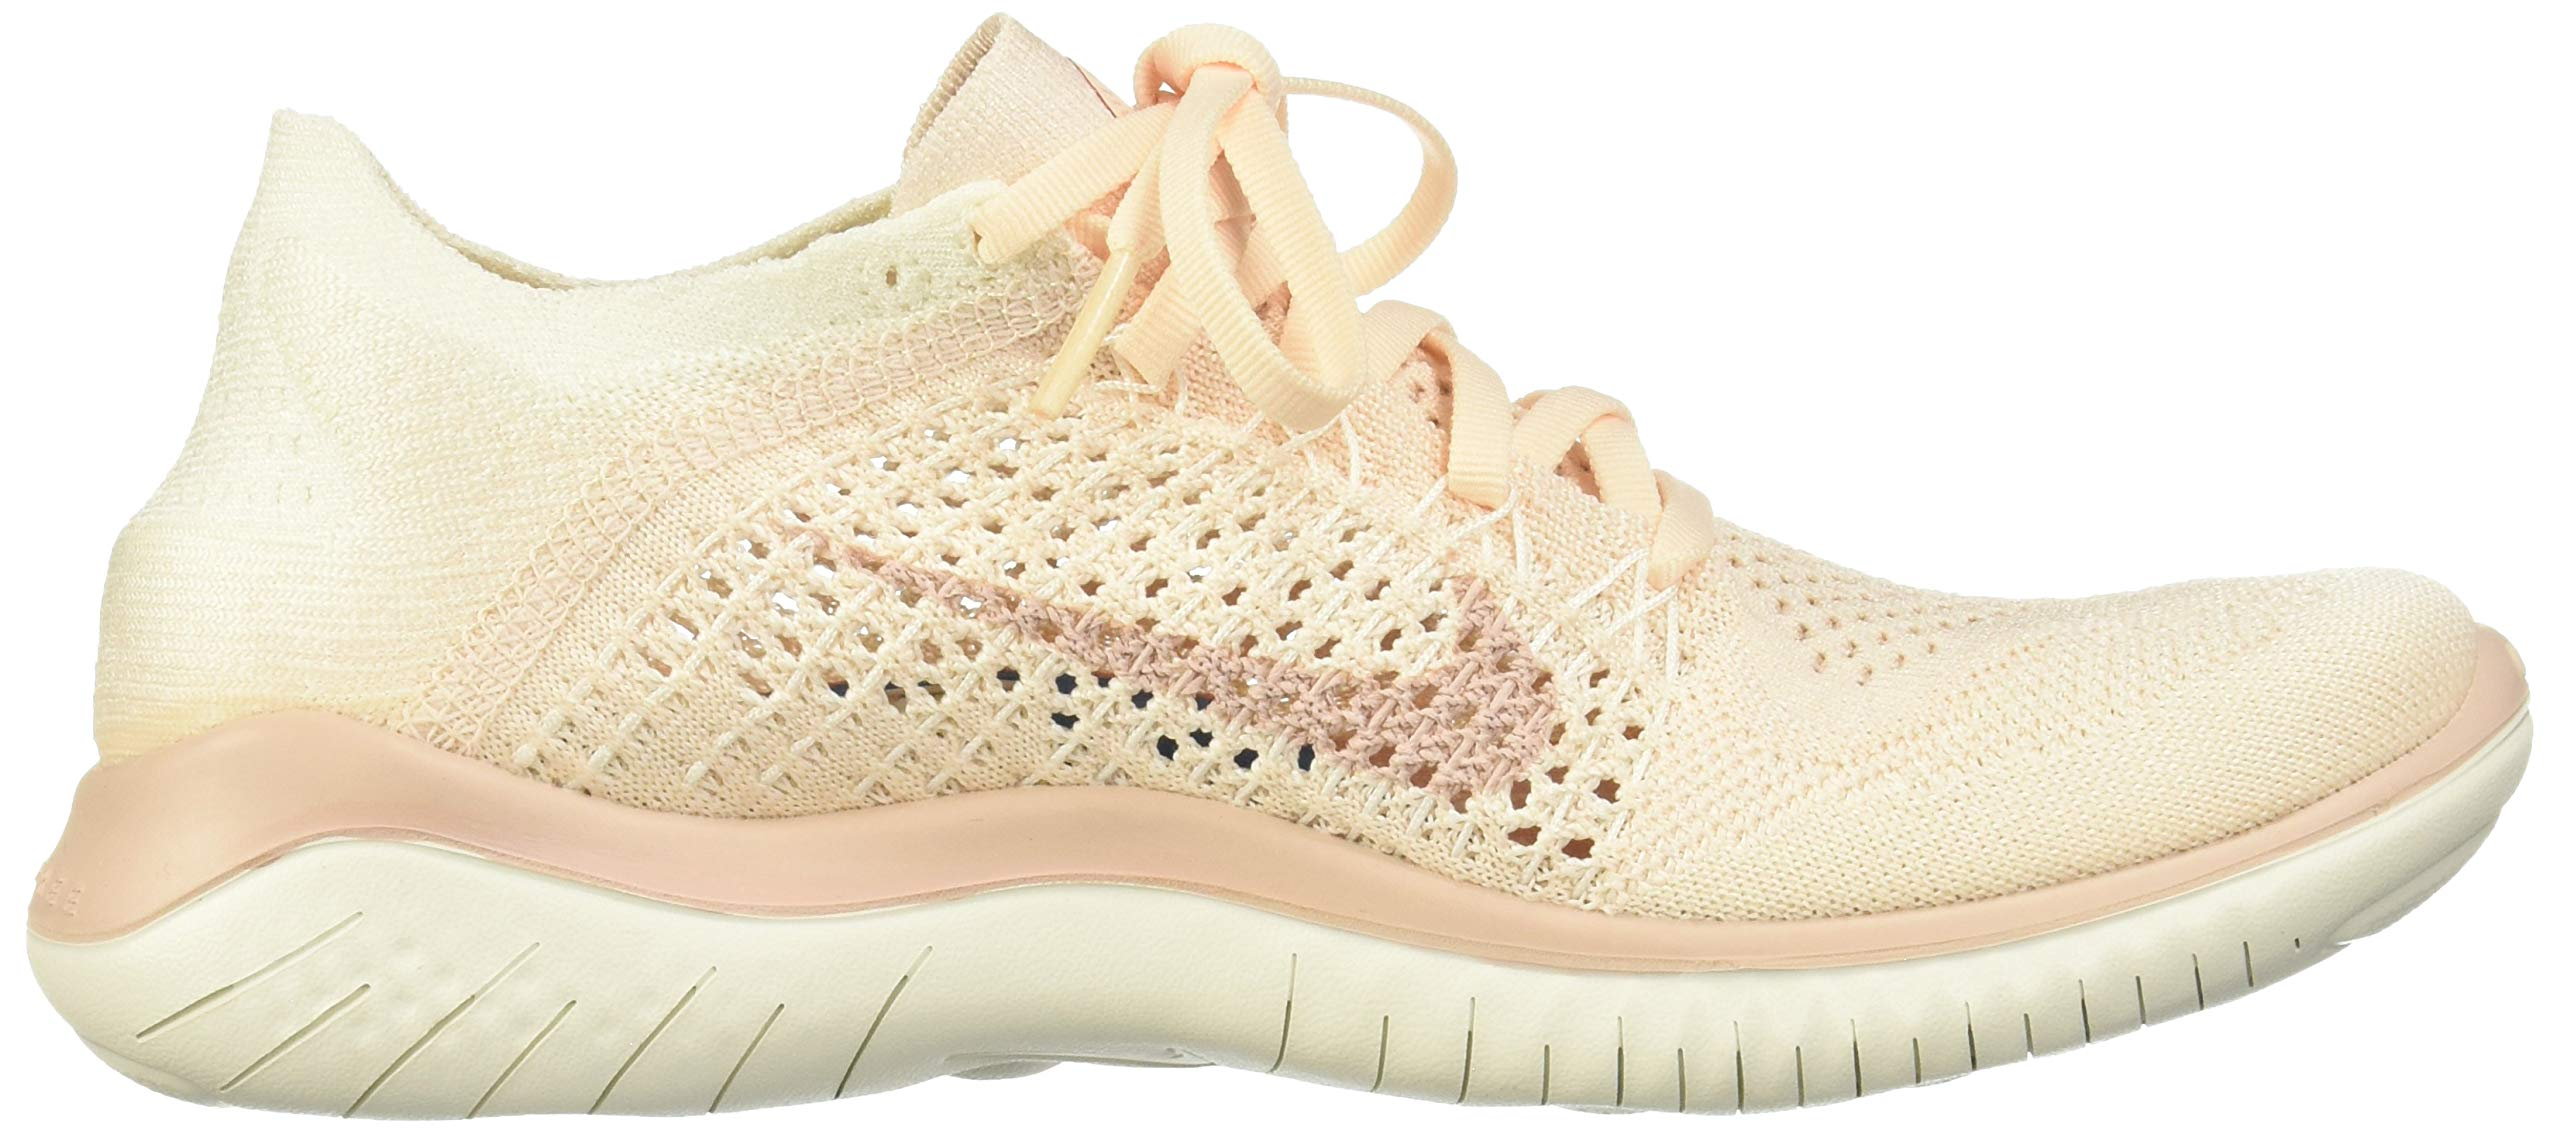 7130OhH%2BSPL - Nike Women's Free Rn Flyknit 2018 Competition Running Shoes